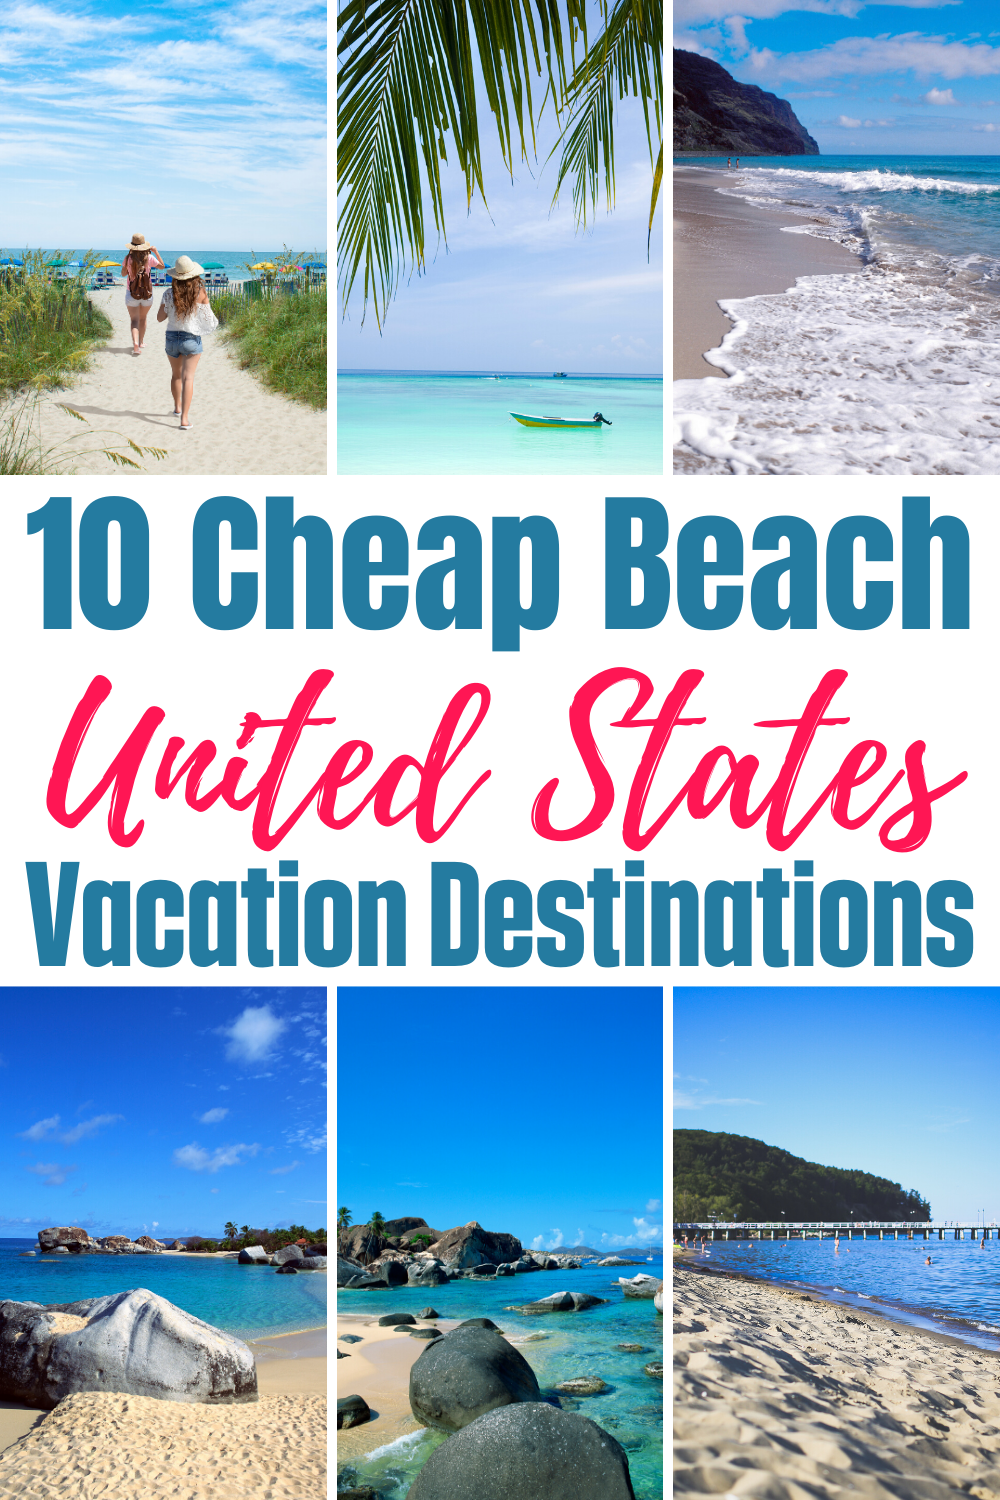 10 Cheap Beach Vacations In The Us Veravise Outdoor Living Family Beach Trip Cheap Beach Vacations Usa Us Beach Vacations